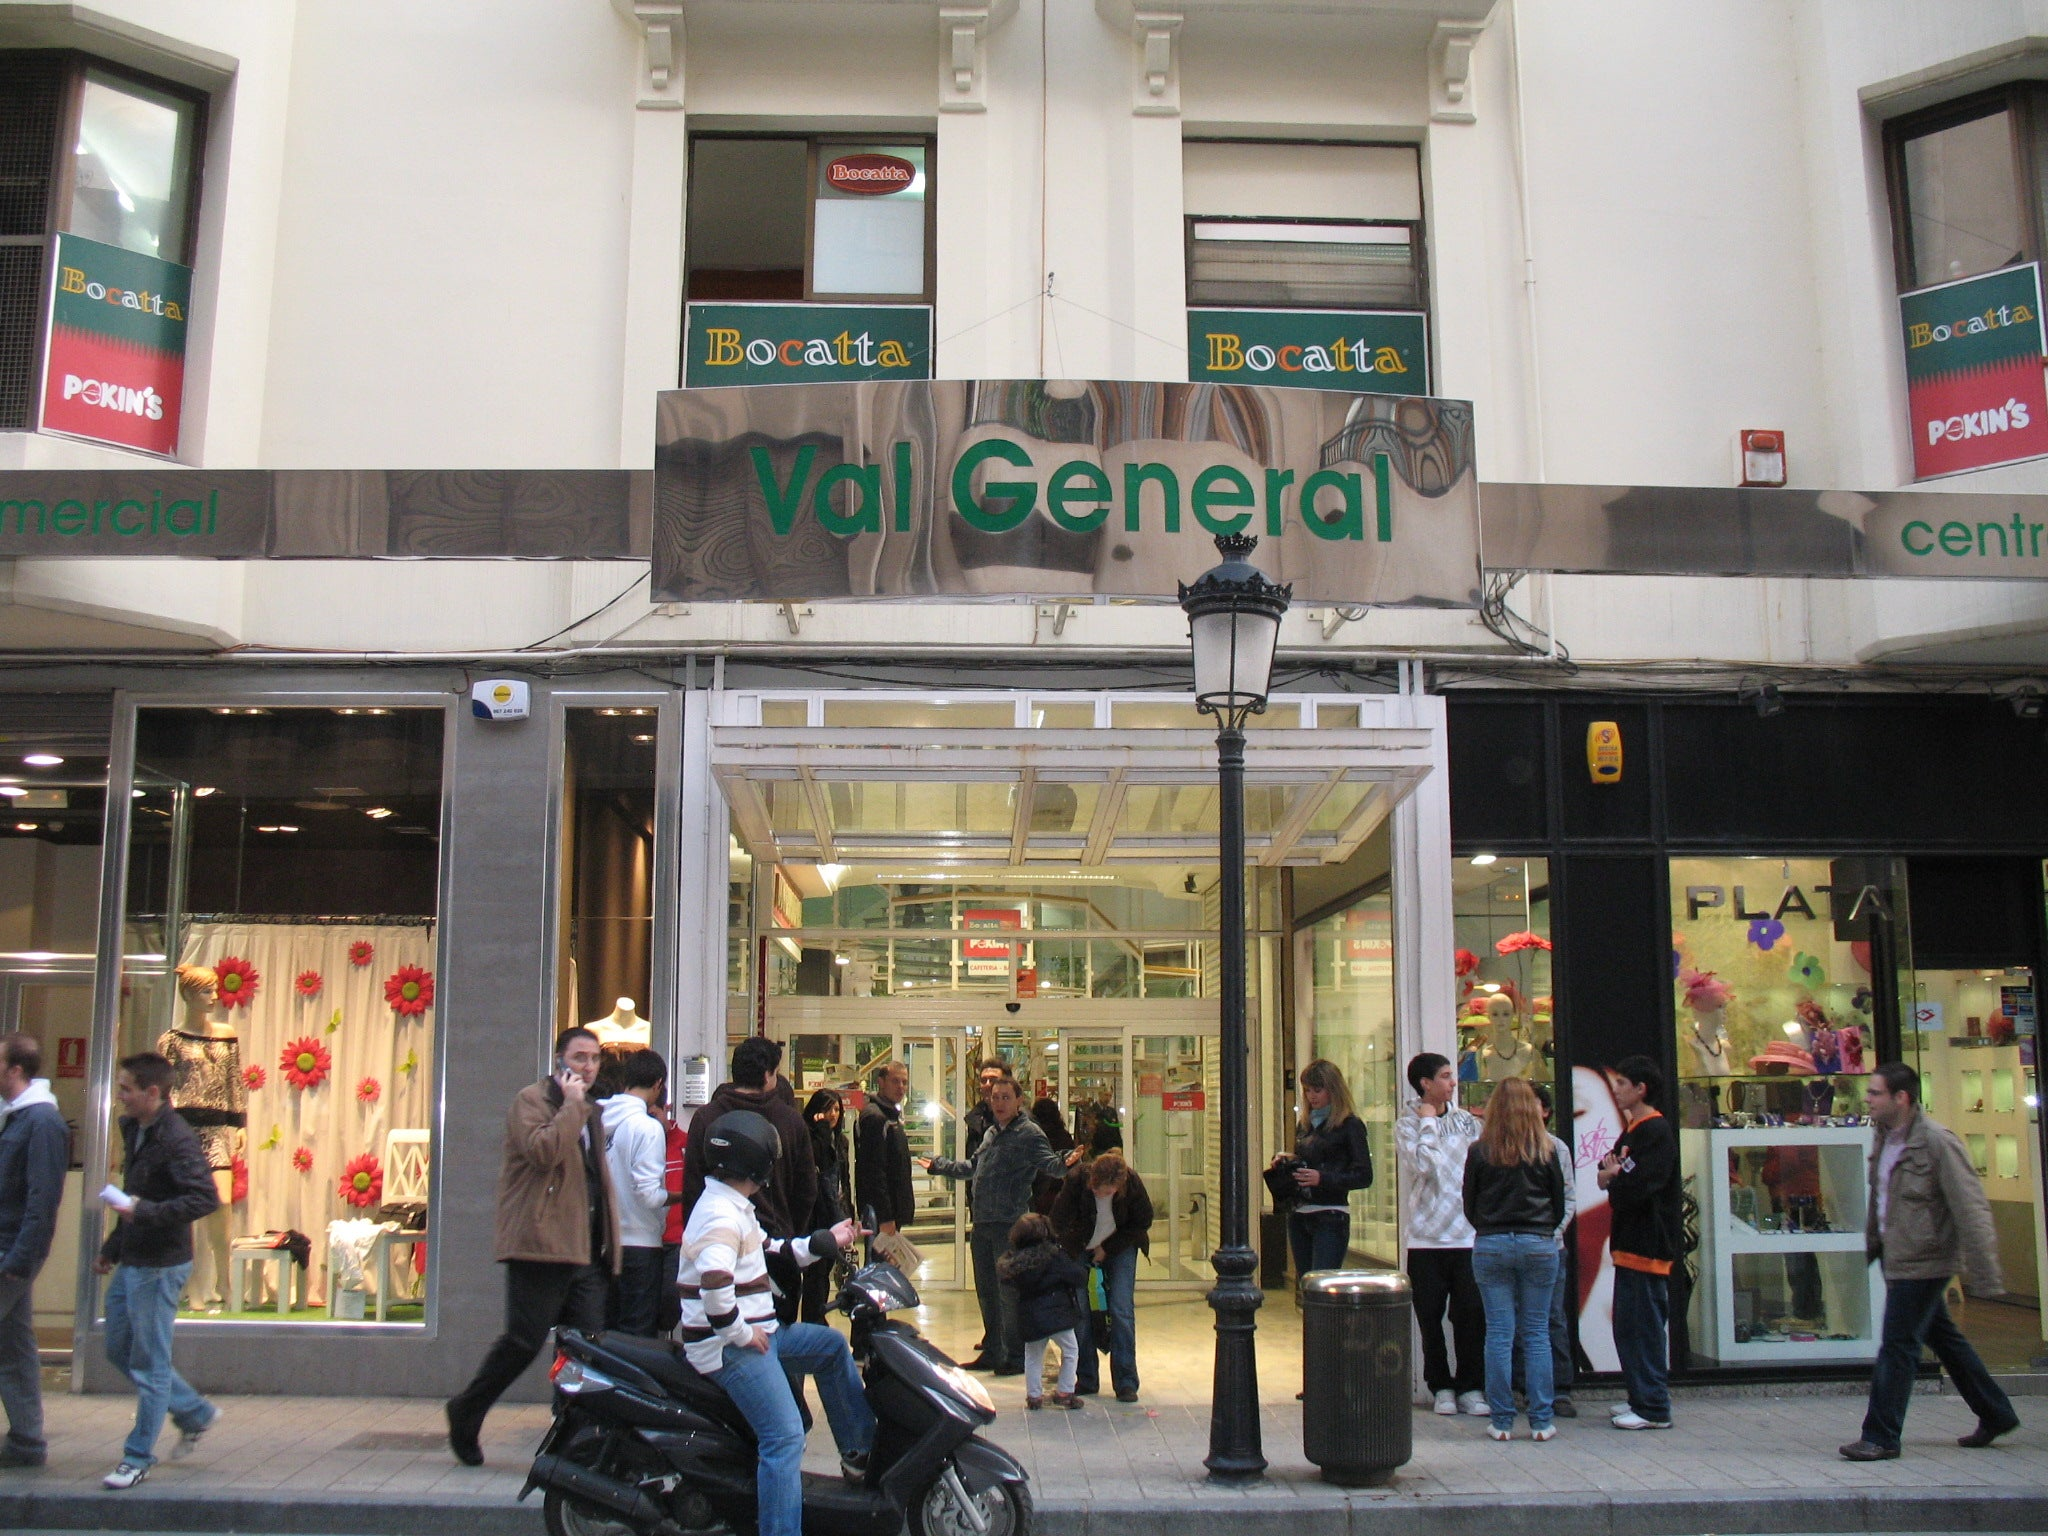 Val General Shopping Centre